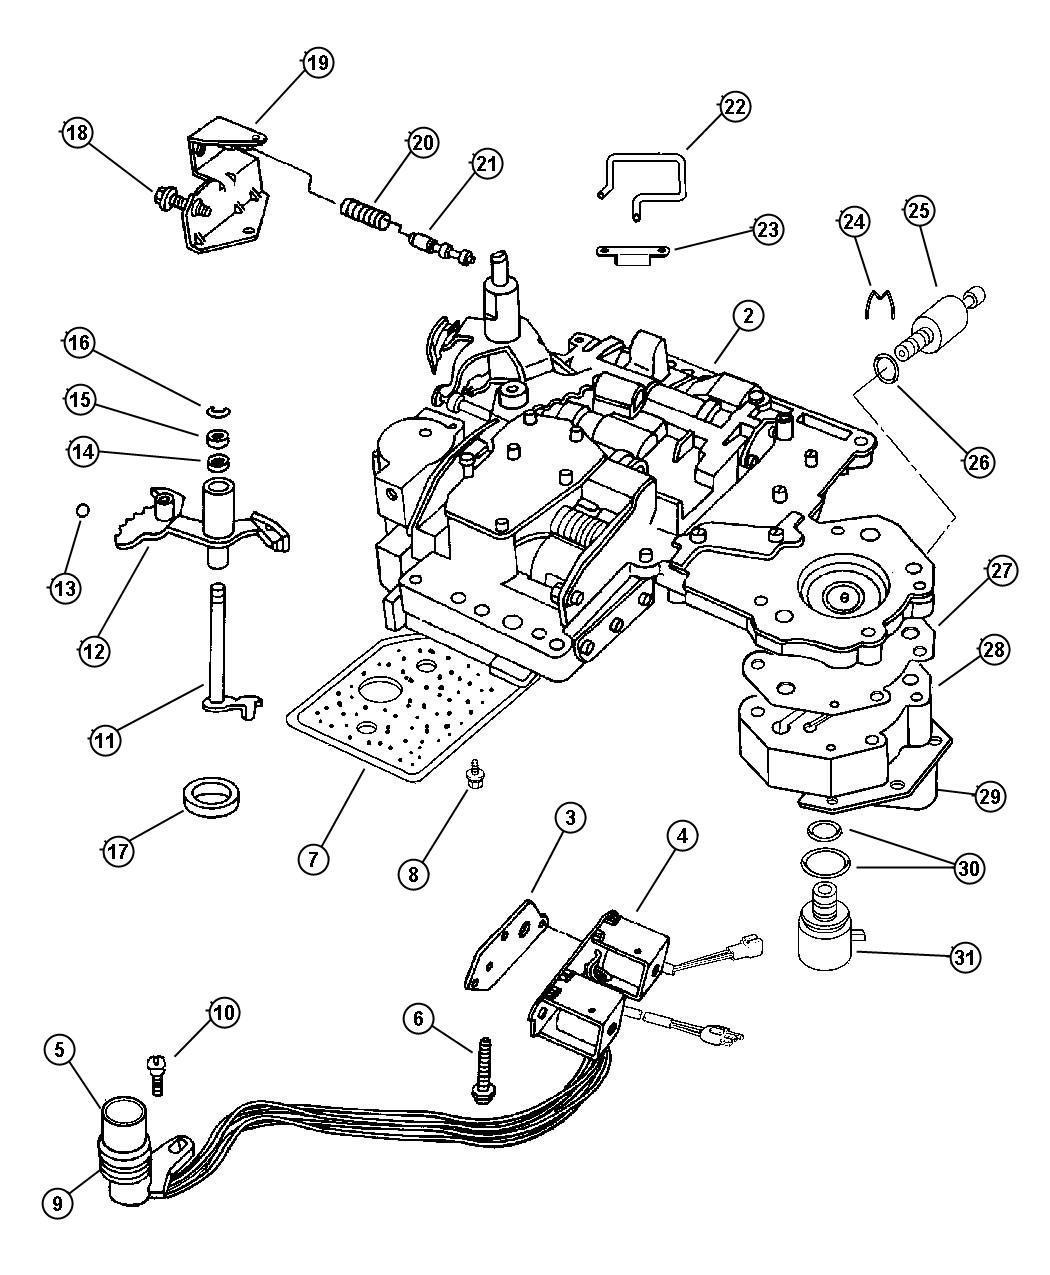 700r4 Transmission 4 Prong Wiring Diagram also Ideal Cat 5 Wiring Diagram likewise Transmission Line Drawings as well A518 additionally Engine Stalling Showing P0725 Code 1373643. on 44re transmission wiring diagram